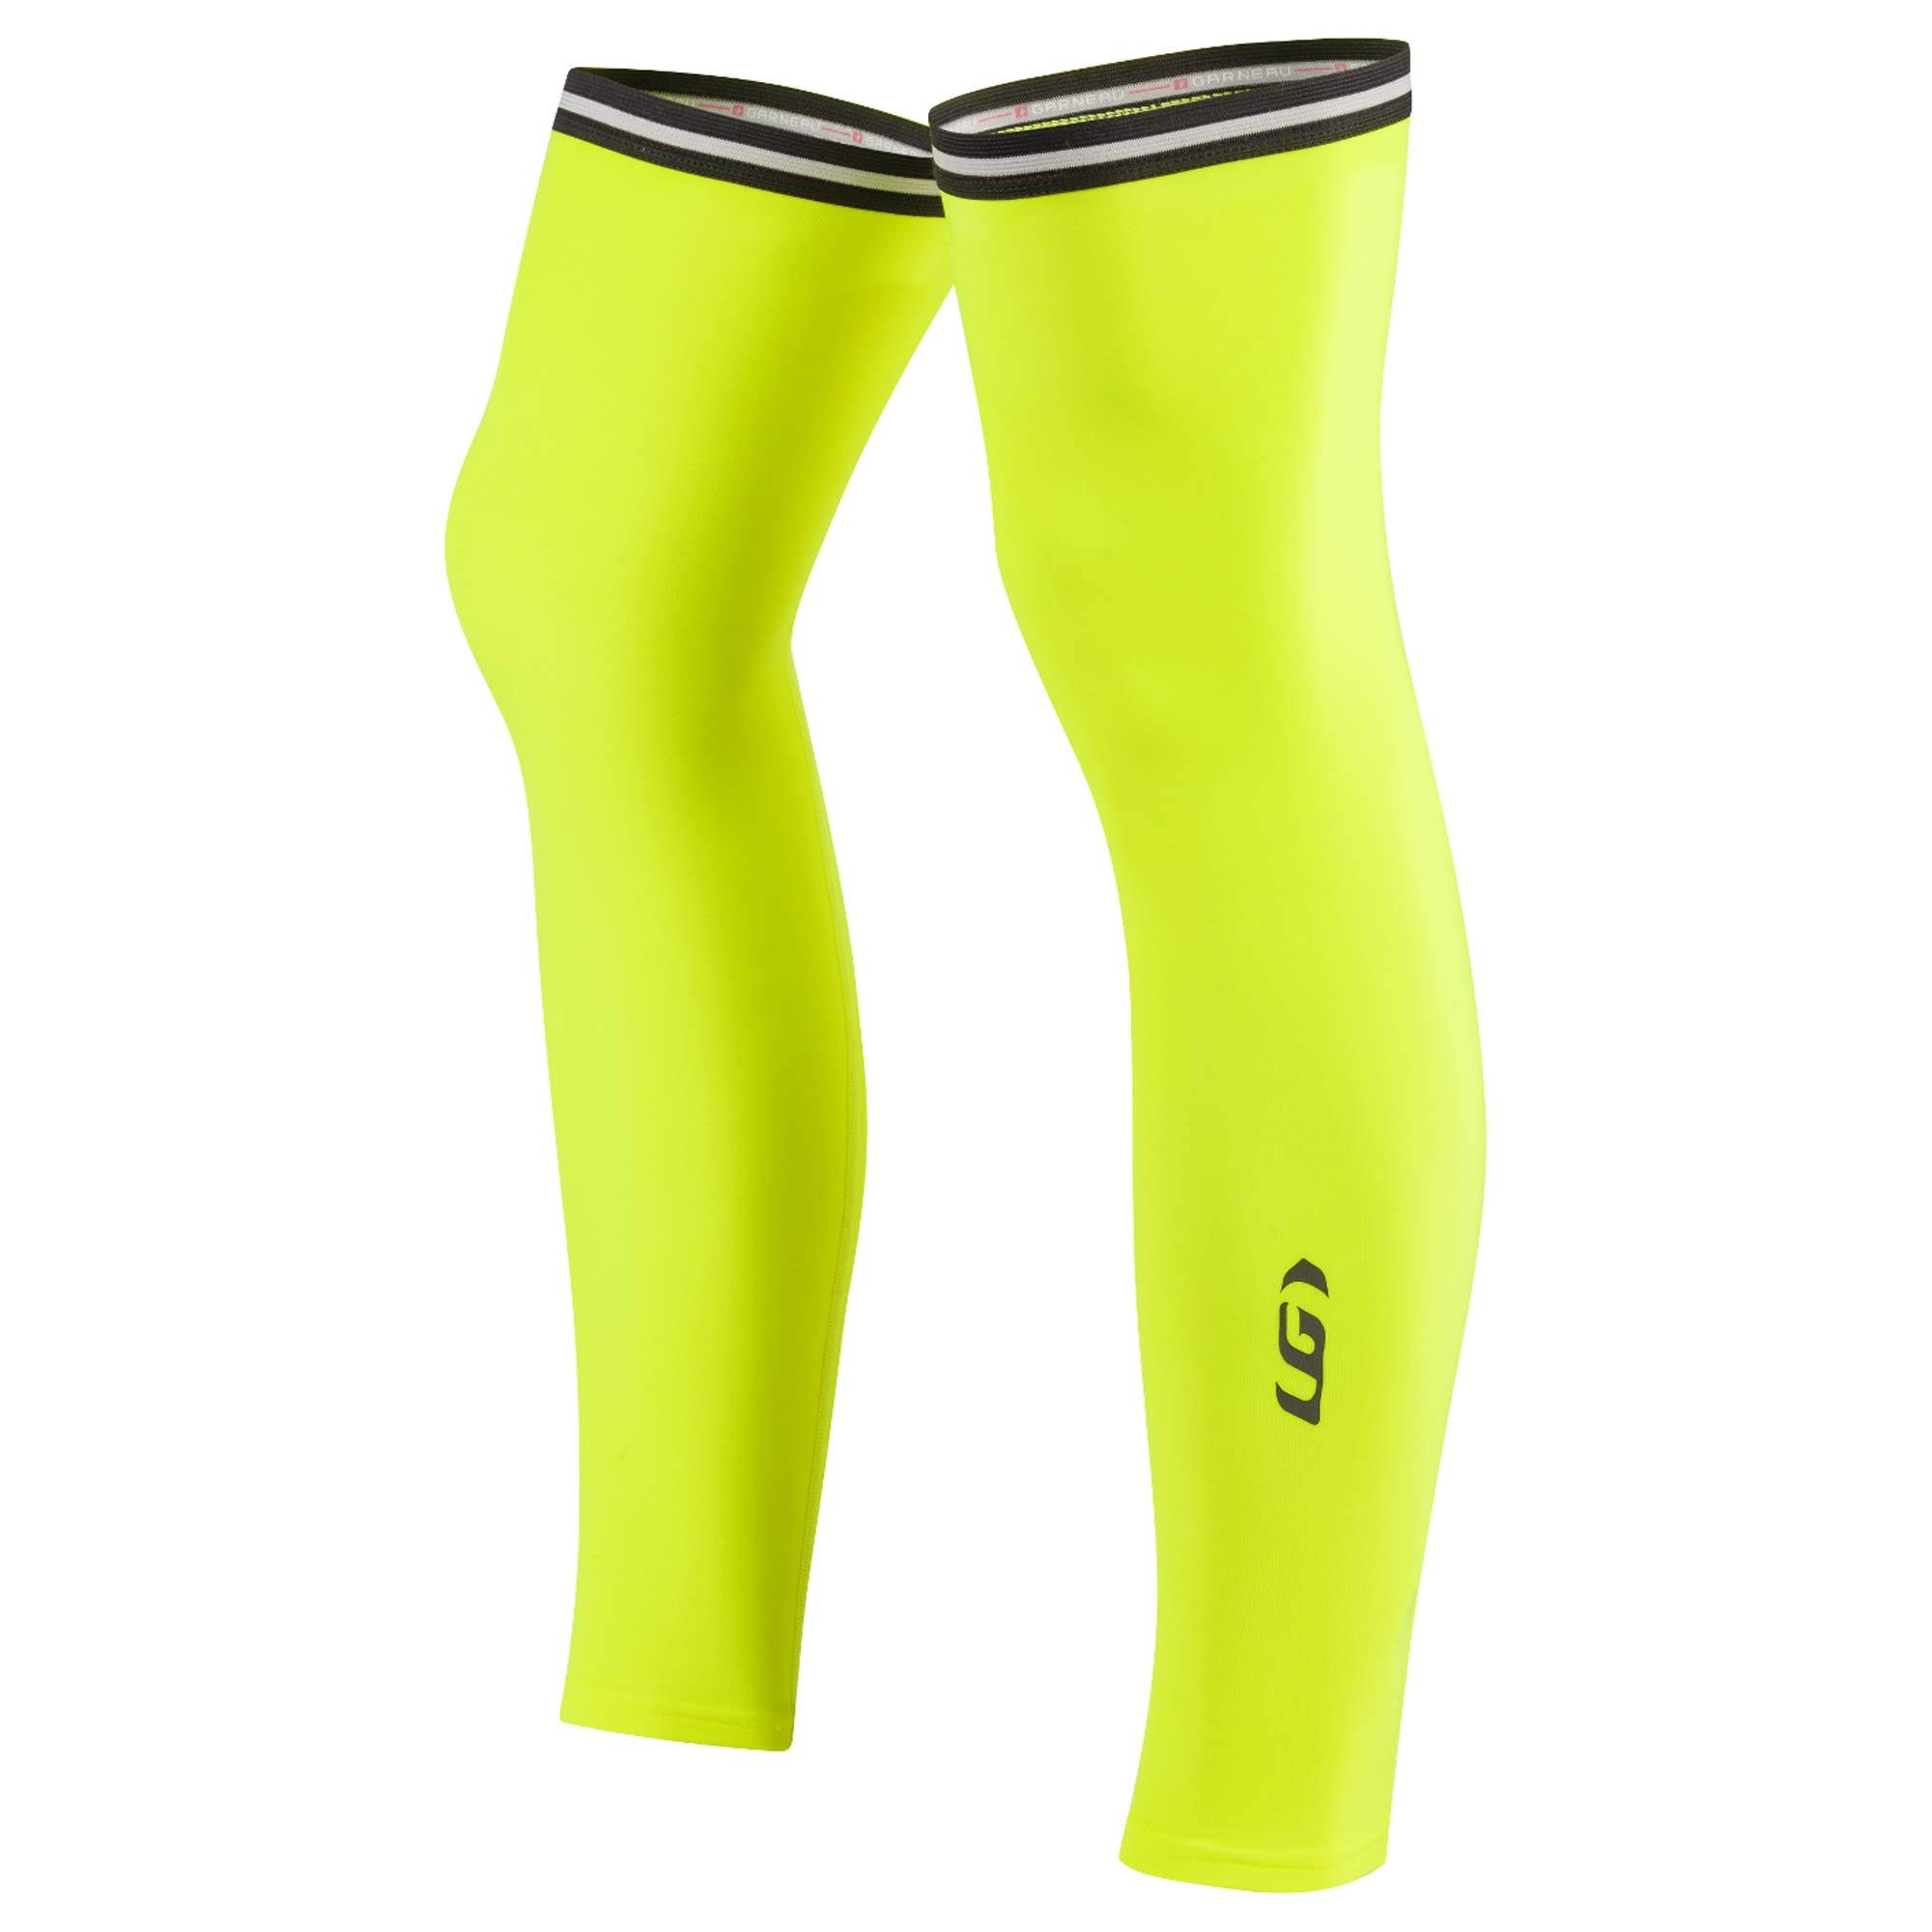 Louis Garneau Cycling Leg Warmers 2 - Bright Yellow, Large